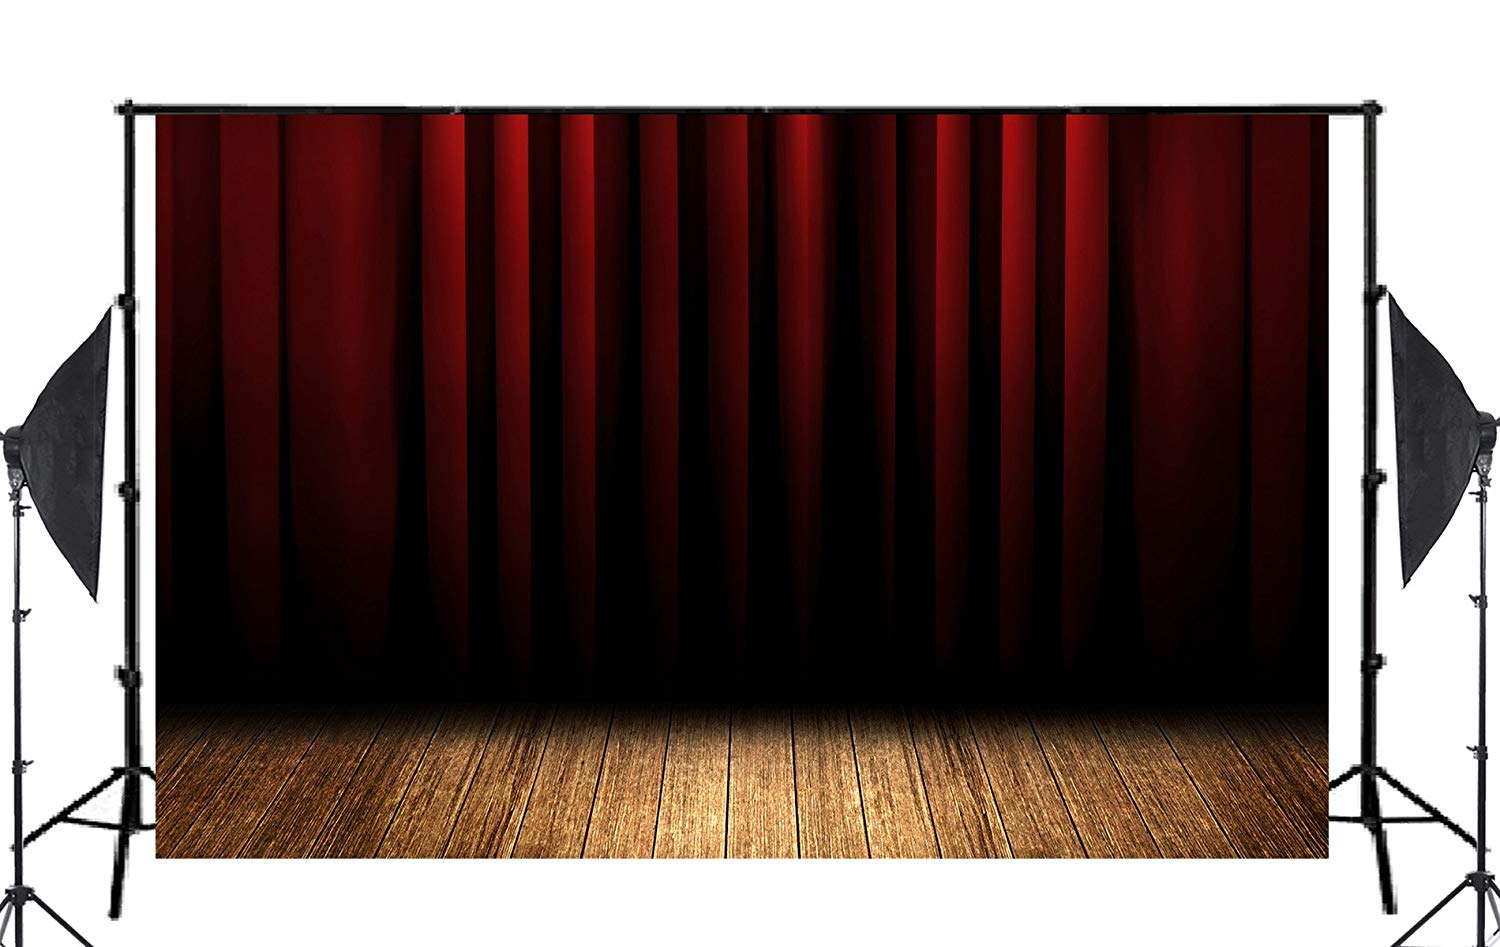 Image 2 - Stratified Black Red Stage Curtain Backdrop Photo Studio Backgrounds 5x7ft Booth Shoot Props-in Photo Studio Accessories from Consumer Electronics